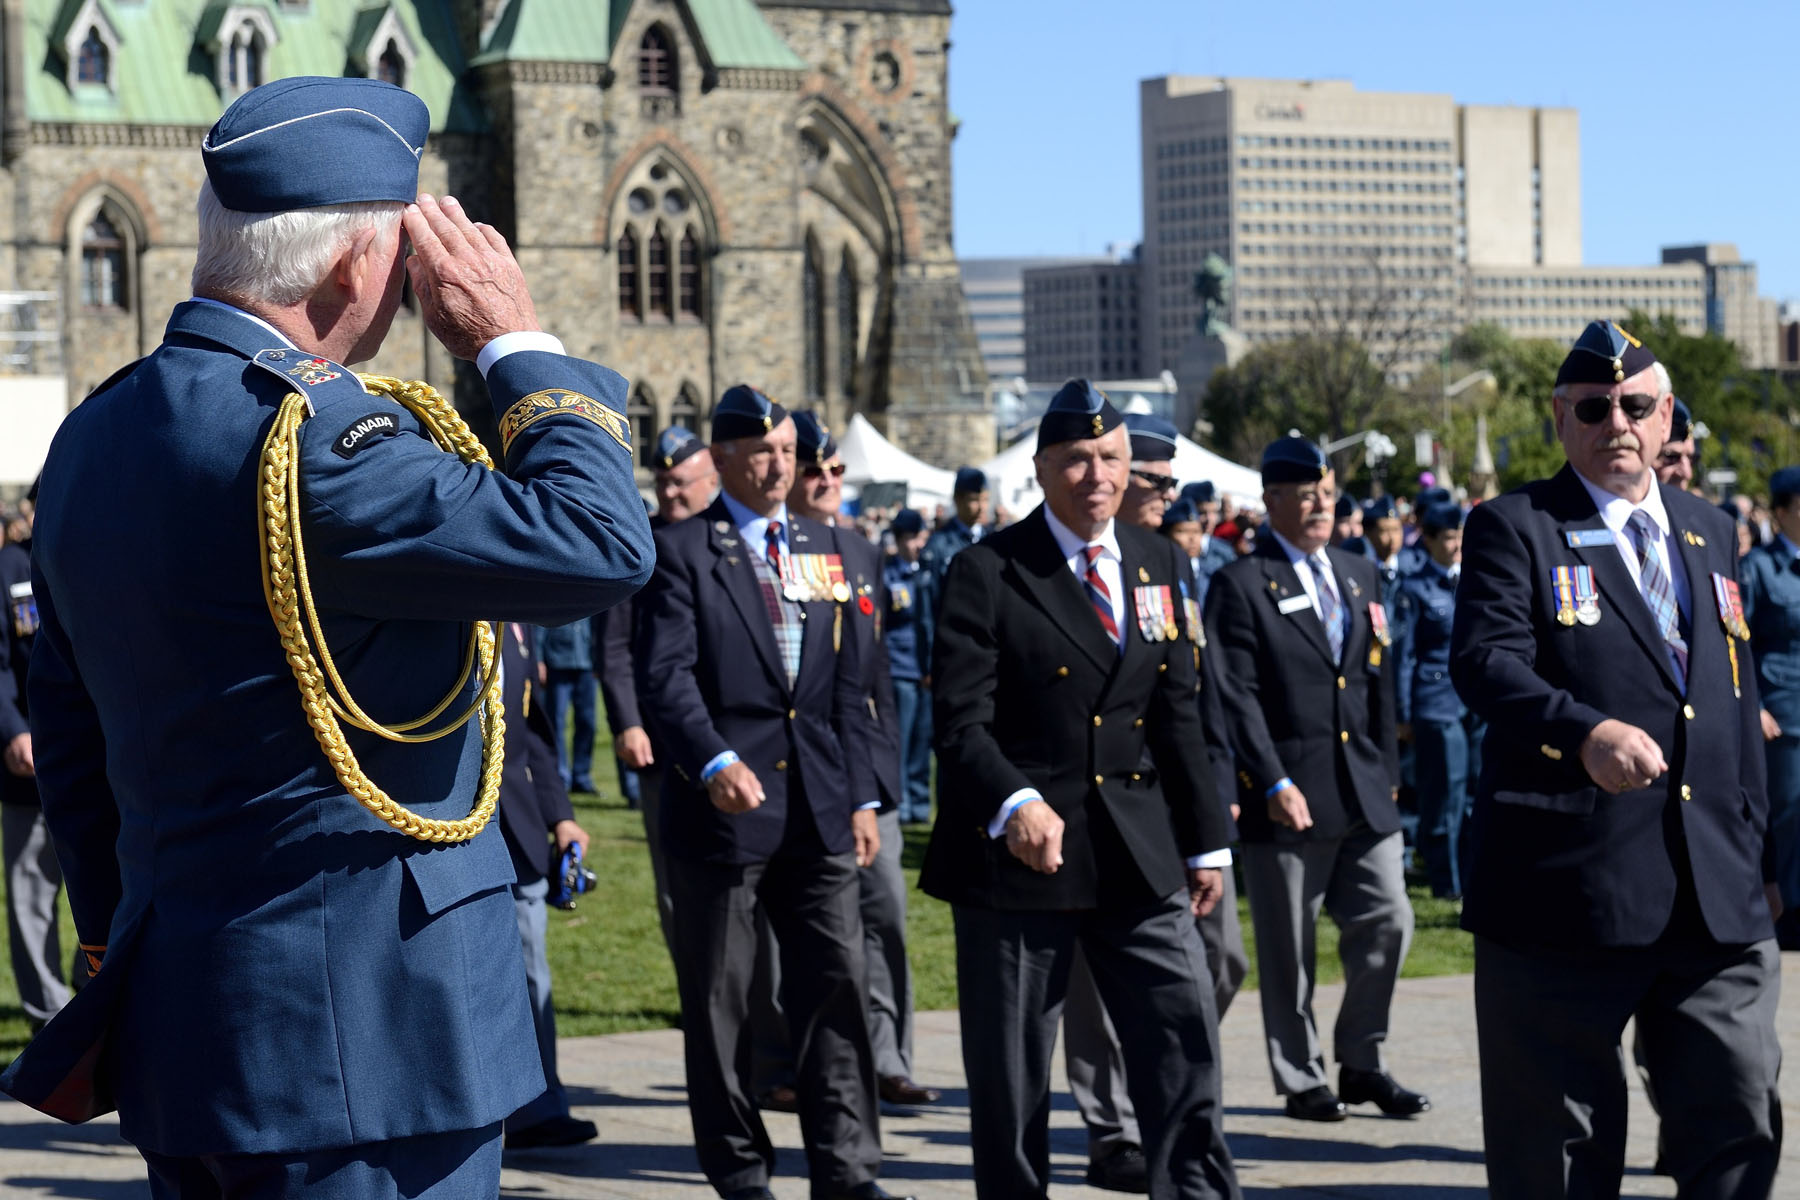 The Governor General saluted the veterans during the march past.